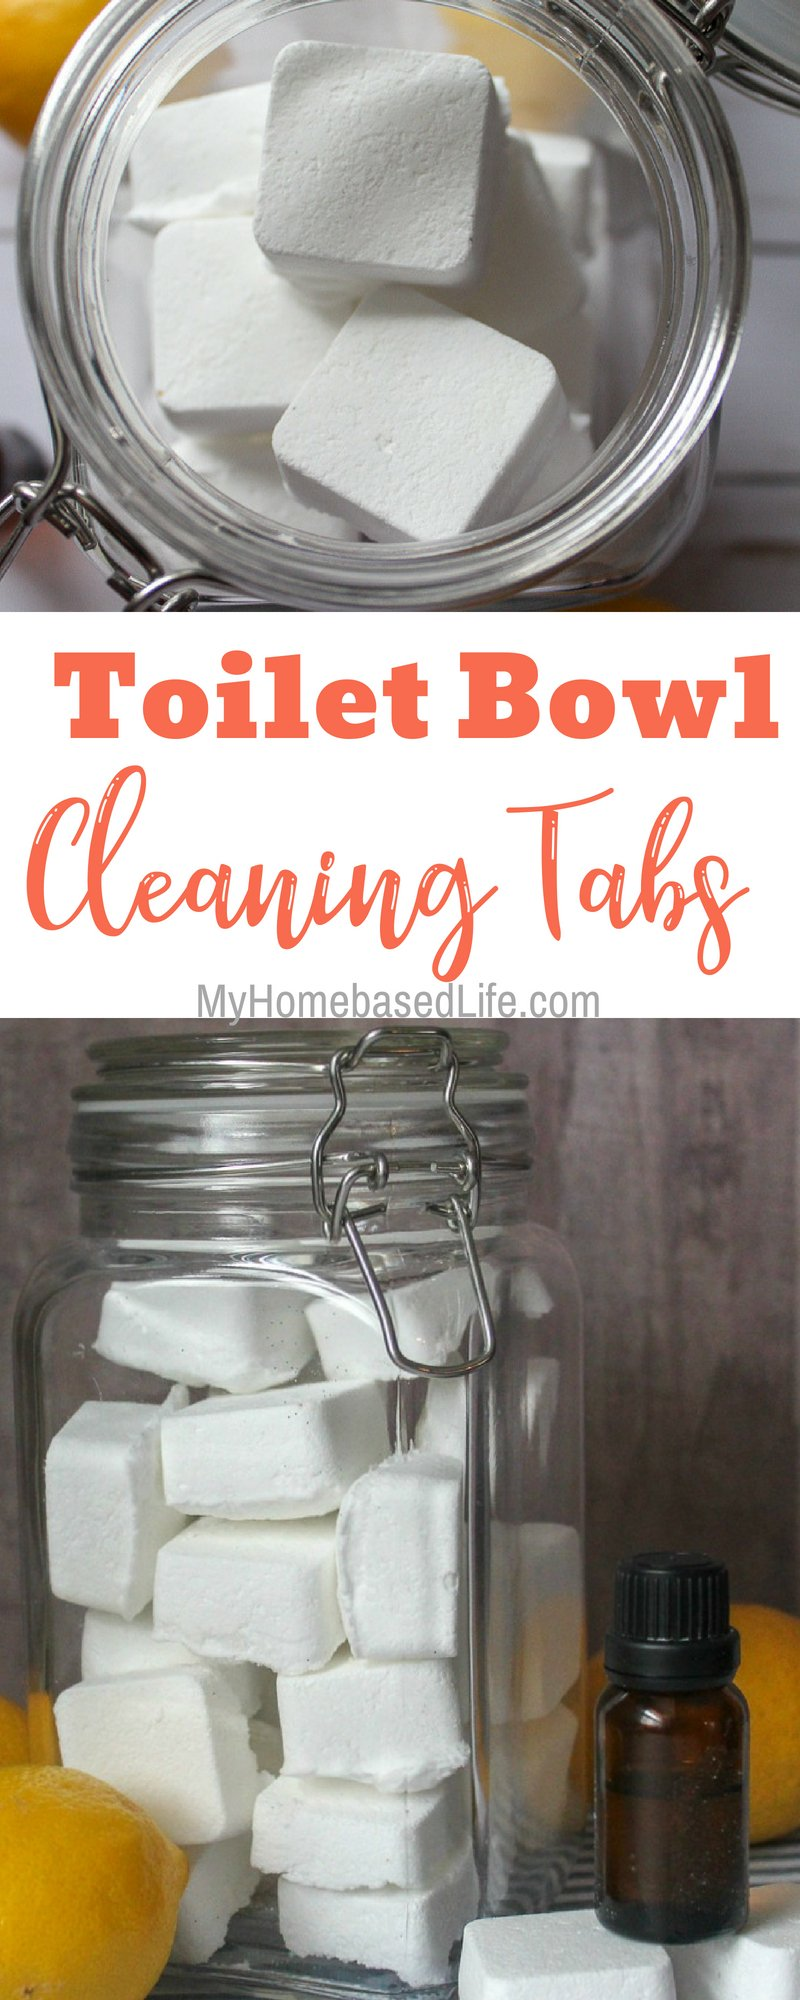 These Homemade Toilet Cleaner Bowl Tabs are going to rock your cleaning world. They are